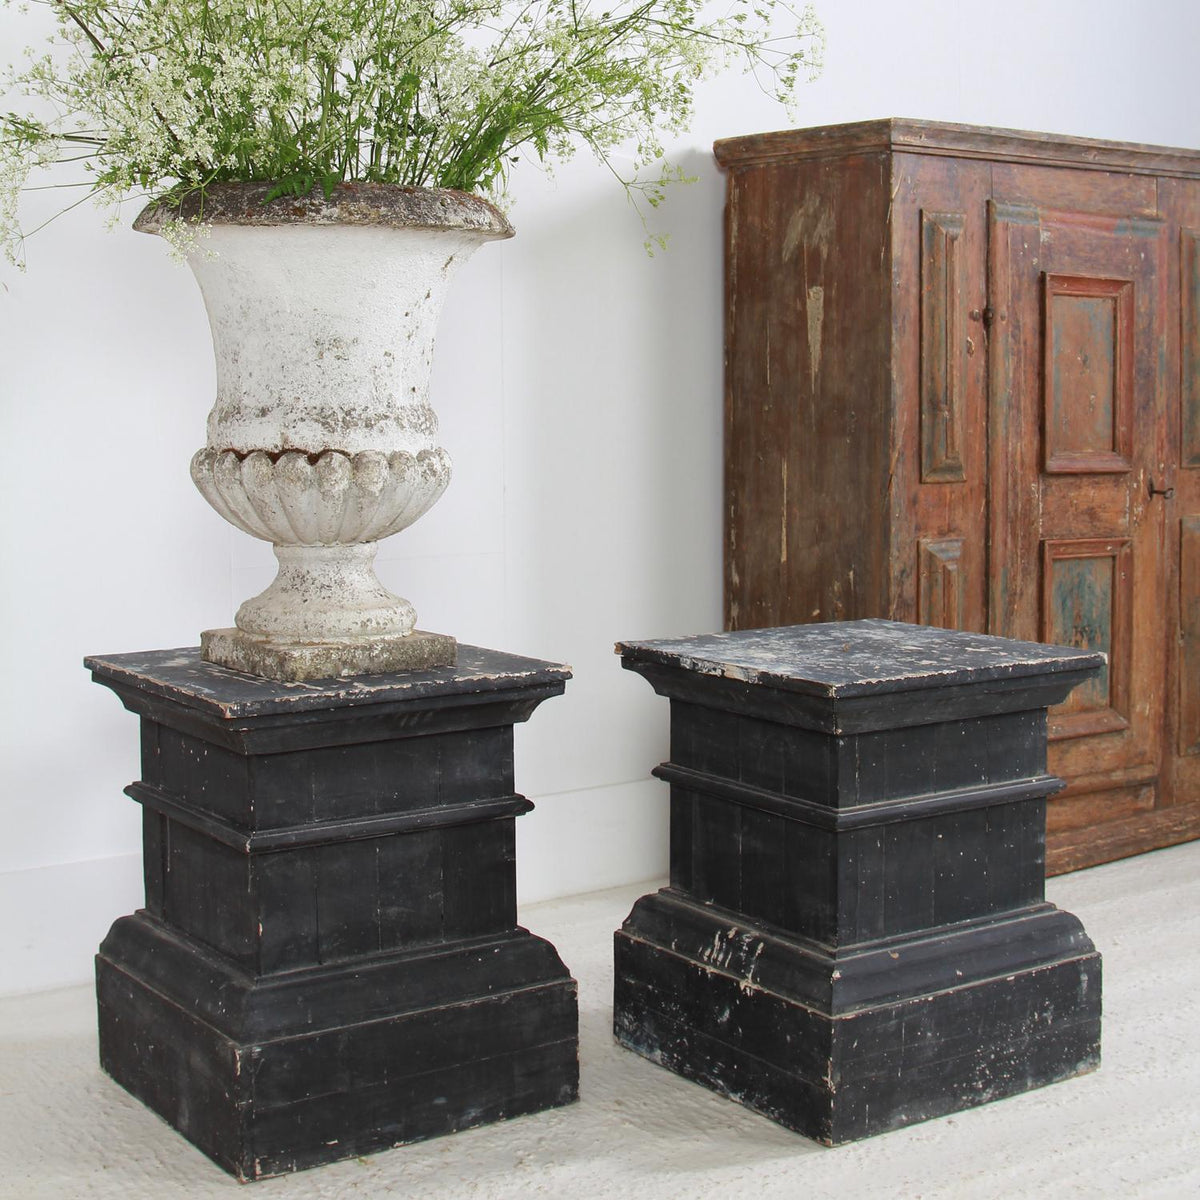 Pair Of Wood Pedestal Sculpture Stands With Nice Old Black Patina